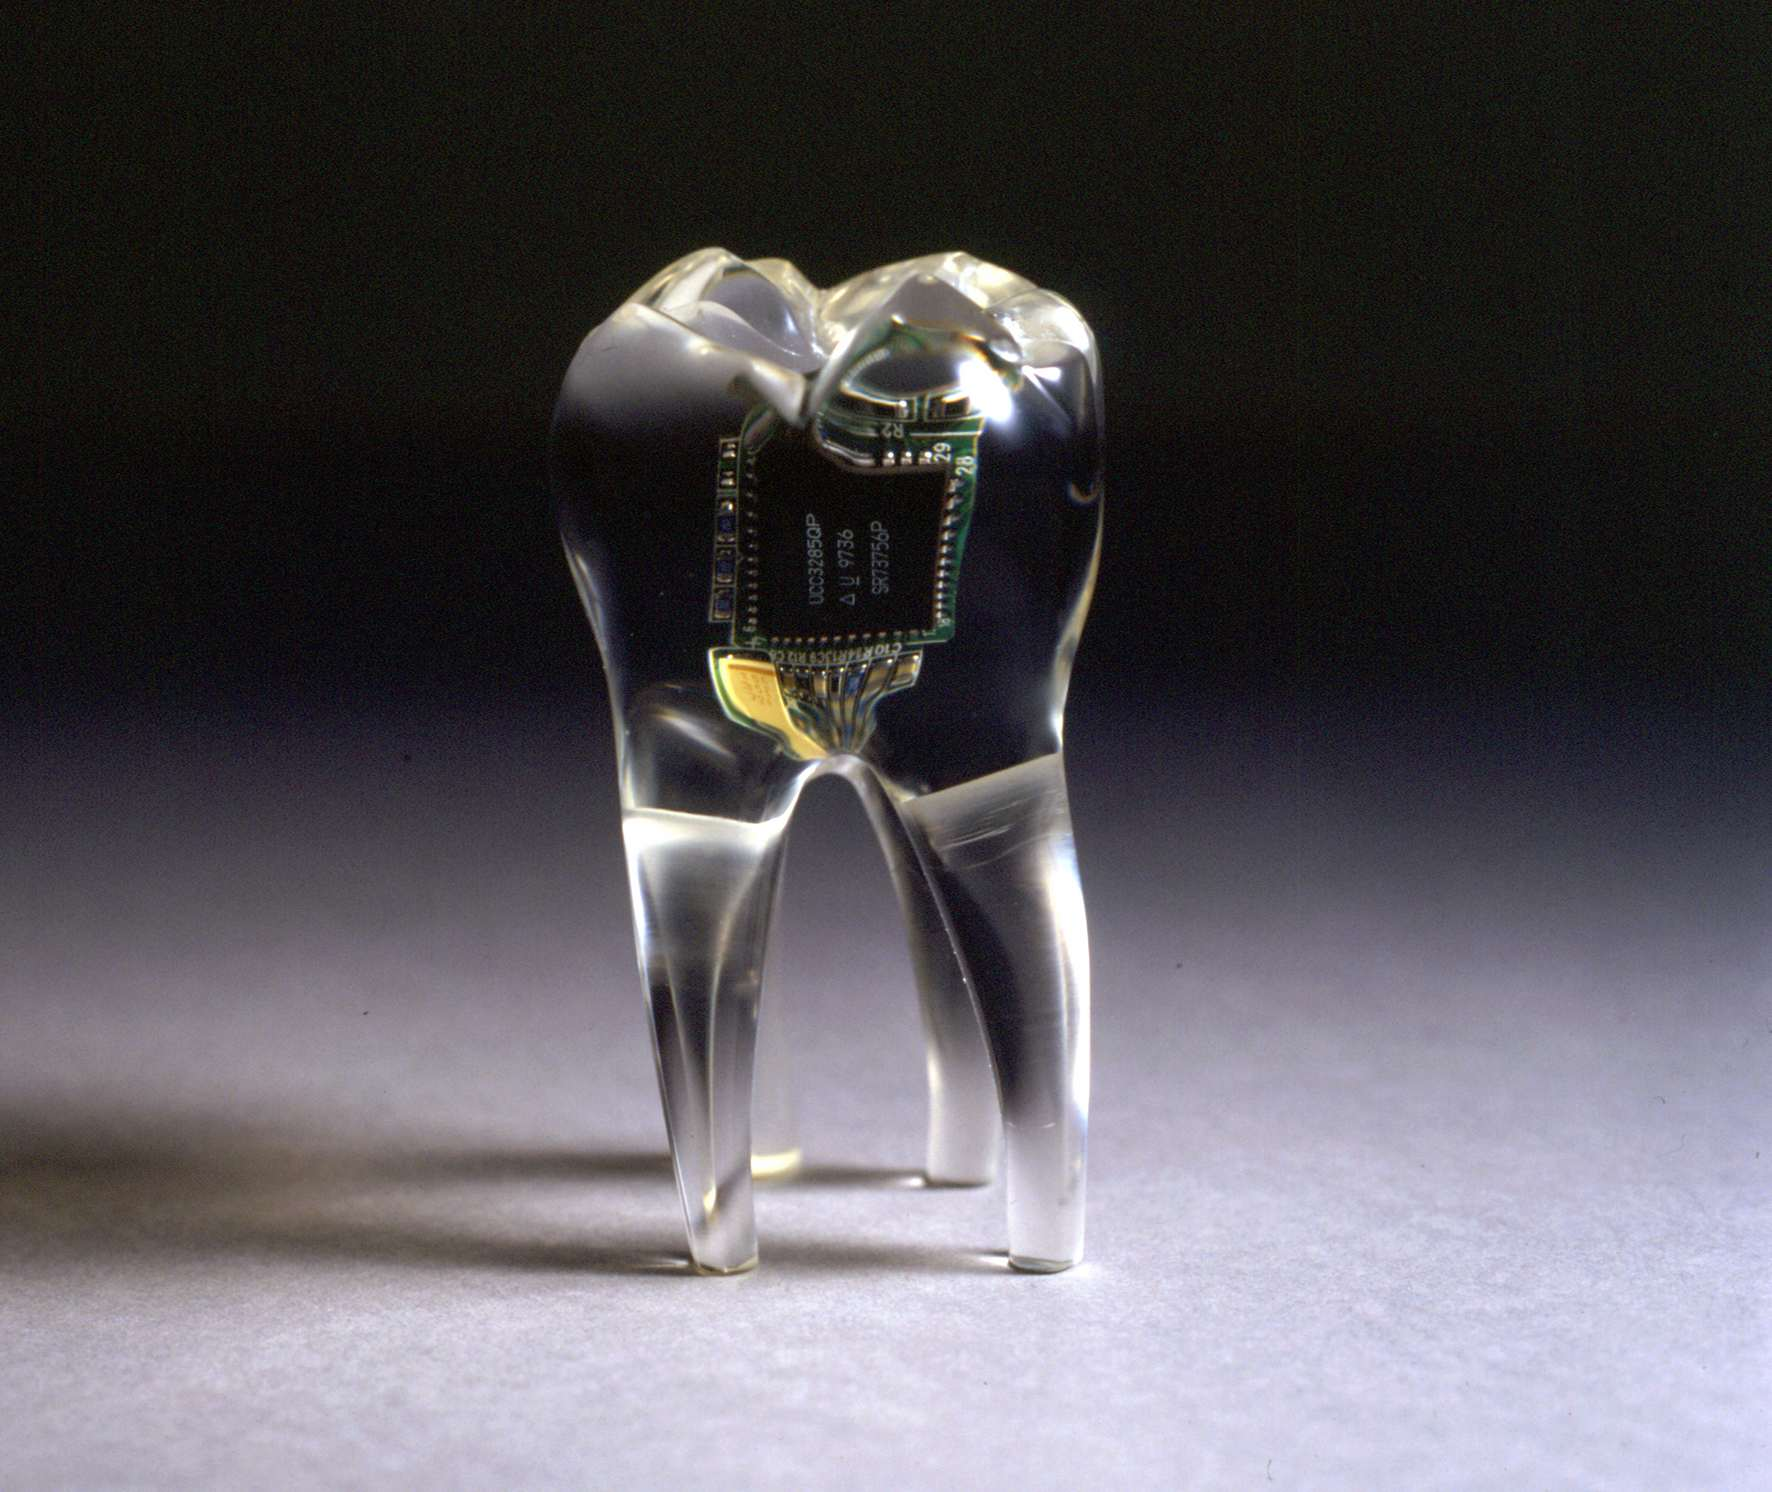 Wearable Implants for the Daring and for Those in Need ...